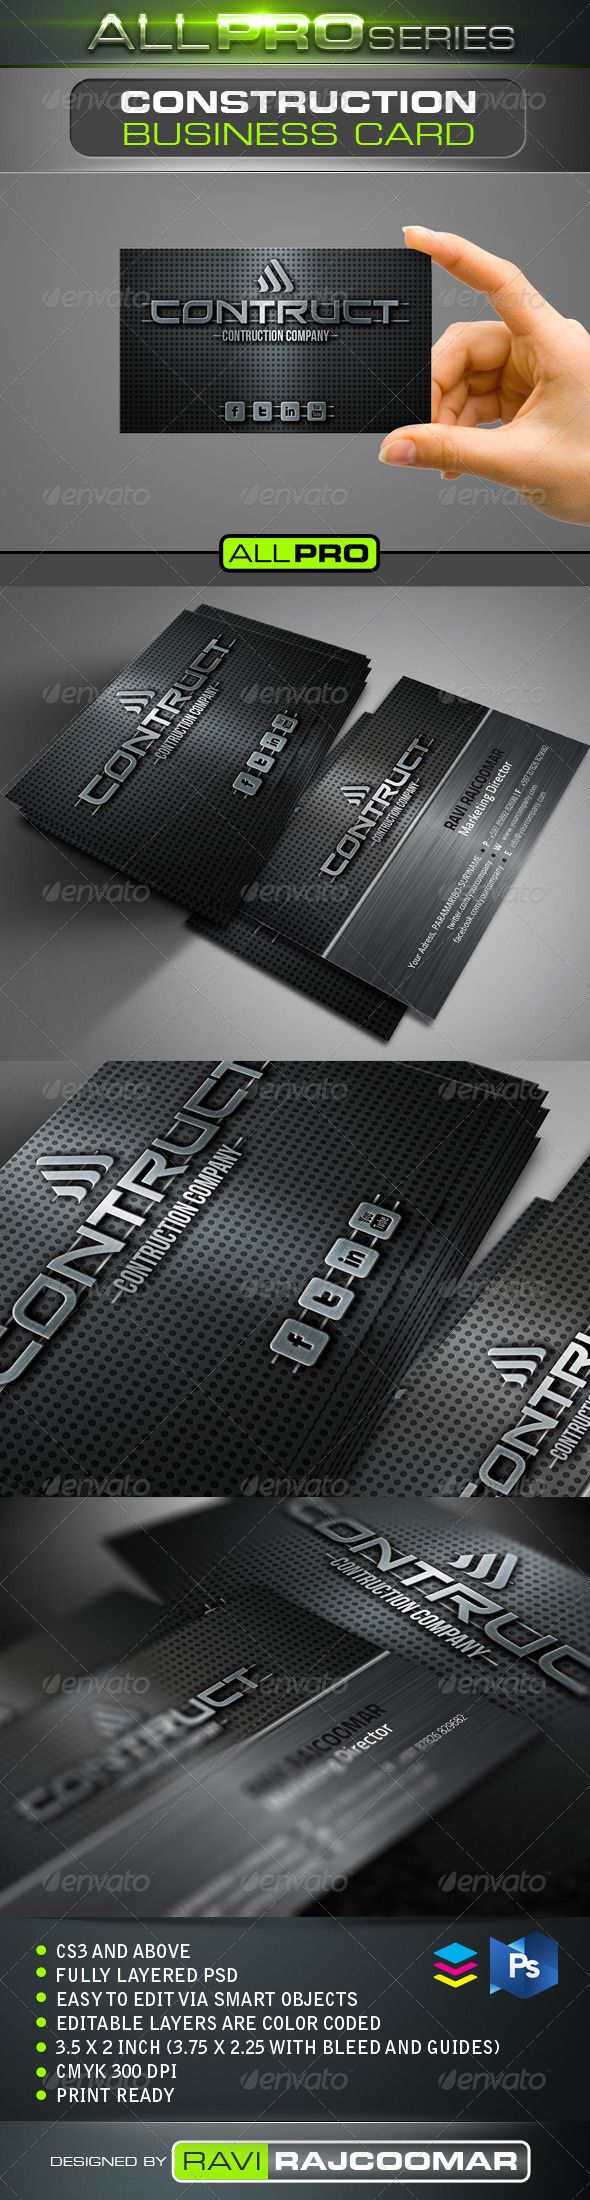 Construction Business Card Construction Business Cards - 2 x 35 business card template